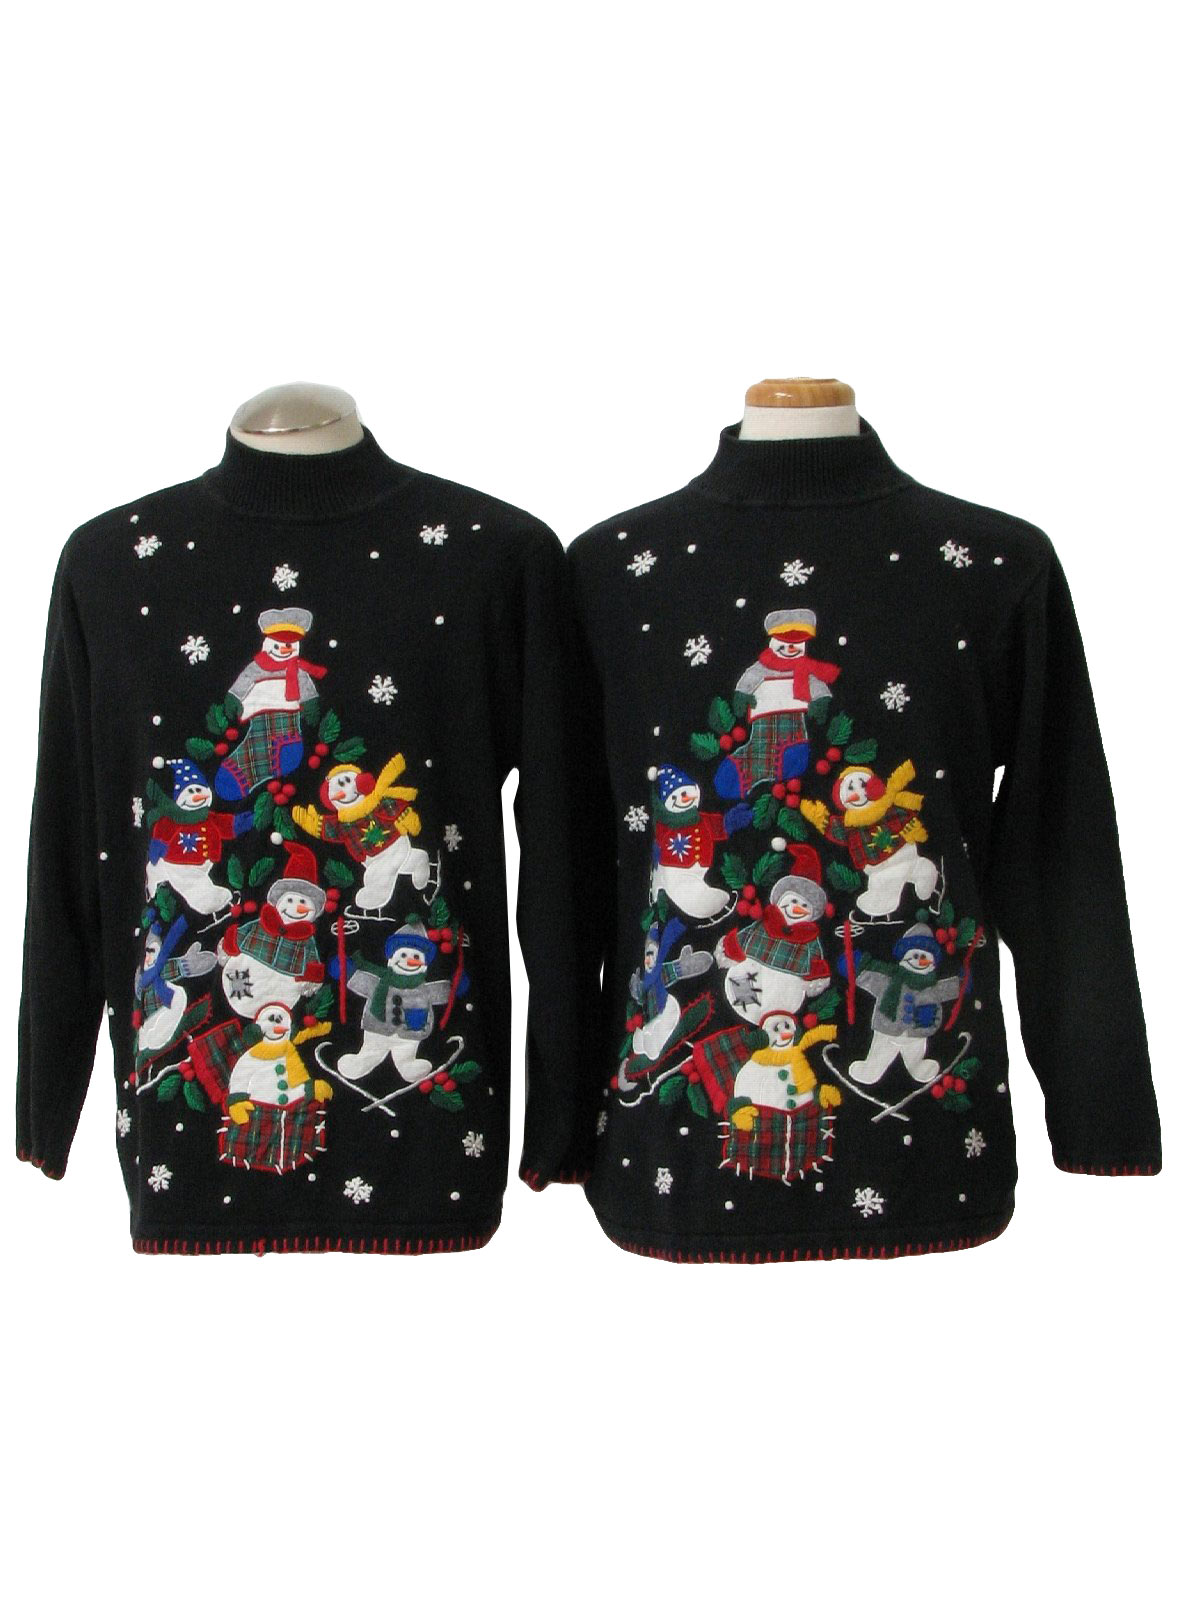 pair of matching ugly christmas sweaters bp design oh snap looks like the duo of the year has just stomped in wearing matching unisex black white